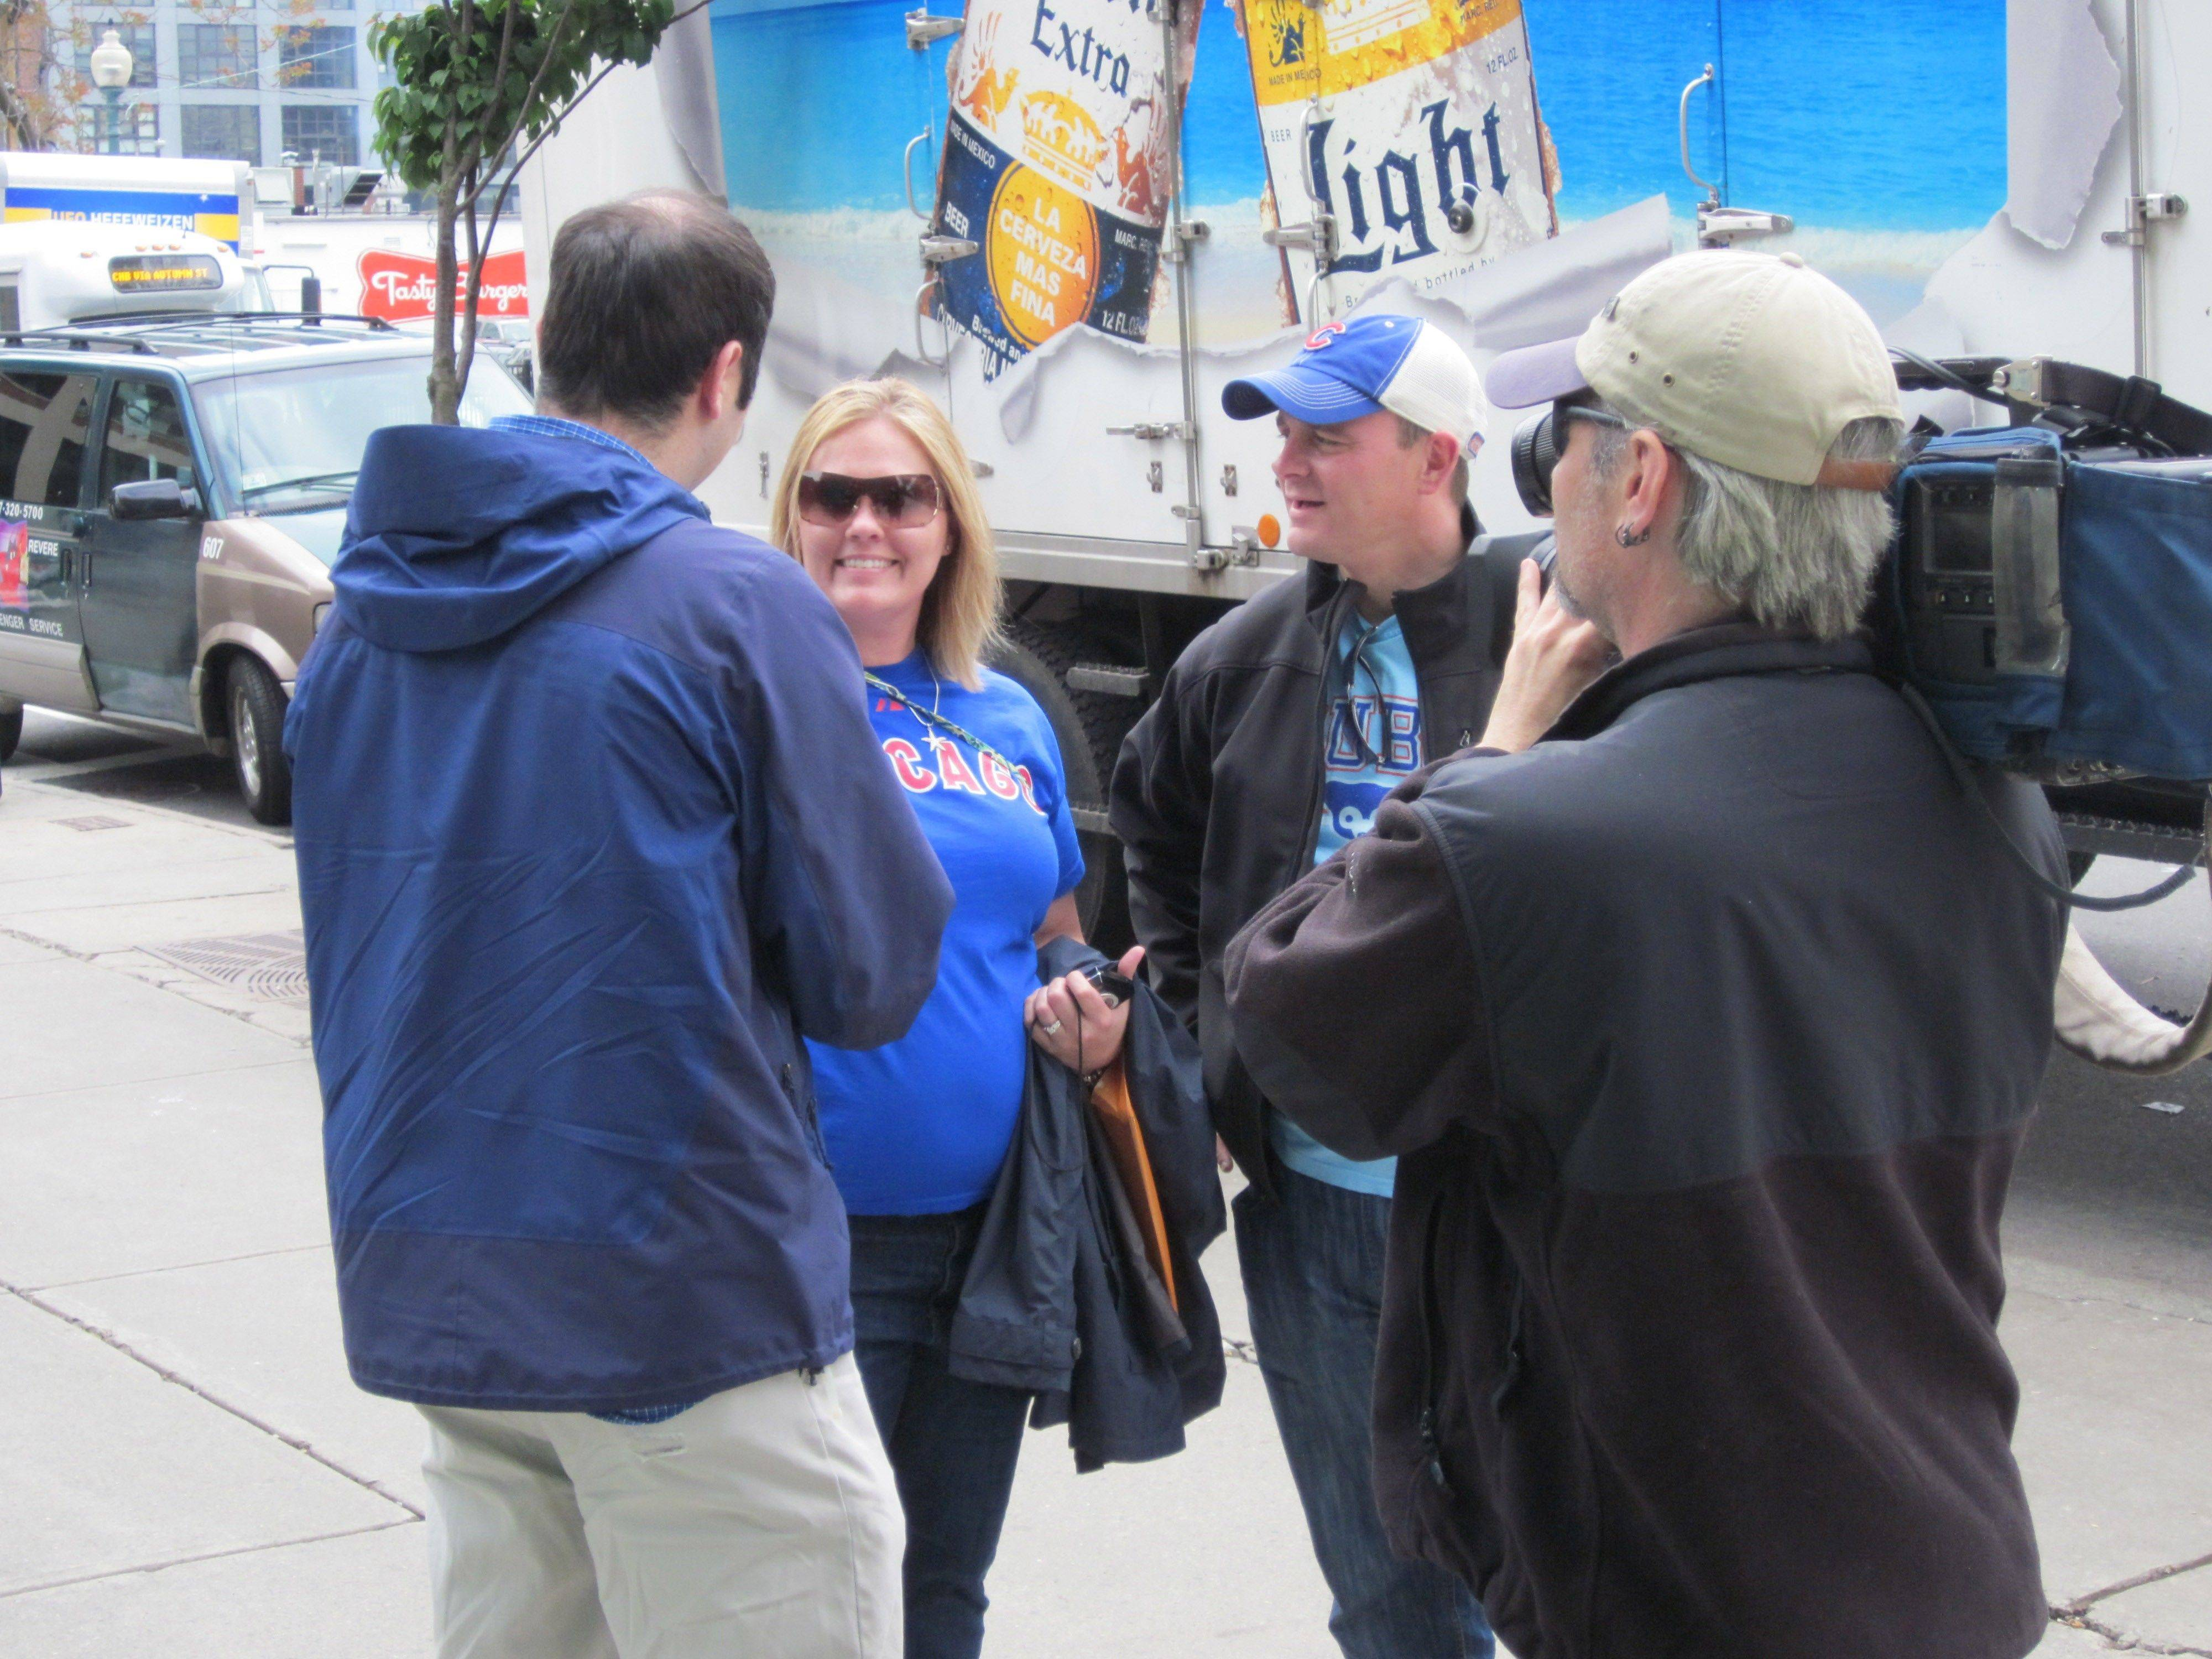 A television crew from a Boston station interviews Amanda and Tim Freidag of Schaumburg before the Cubs-Red Sox game Friday, May 20, at Fenway Park. It was the first time the Cubs had played at Fenway since the 1918 World Series.